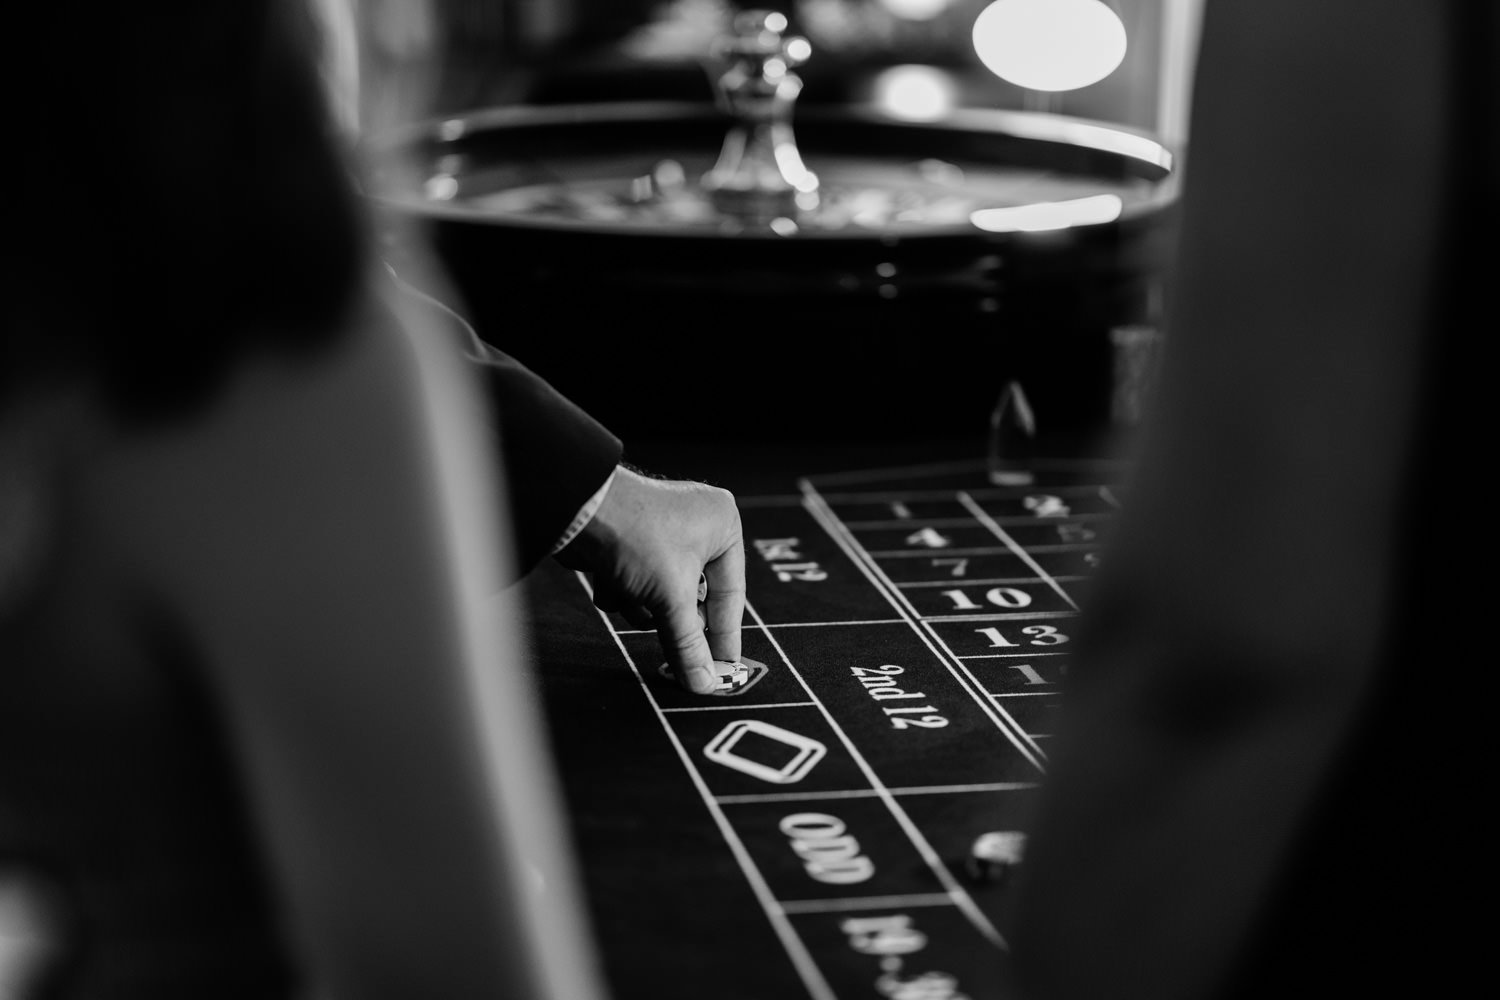 casino at wedding - wedding photographer london